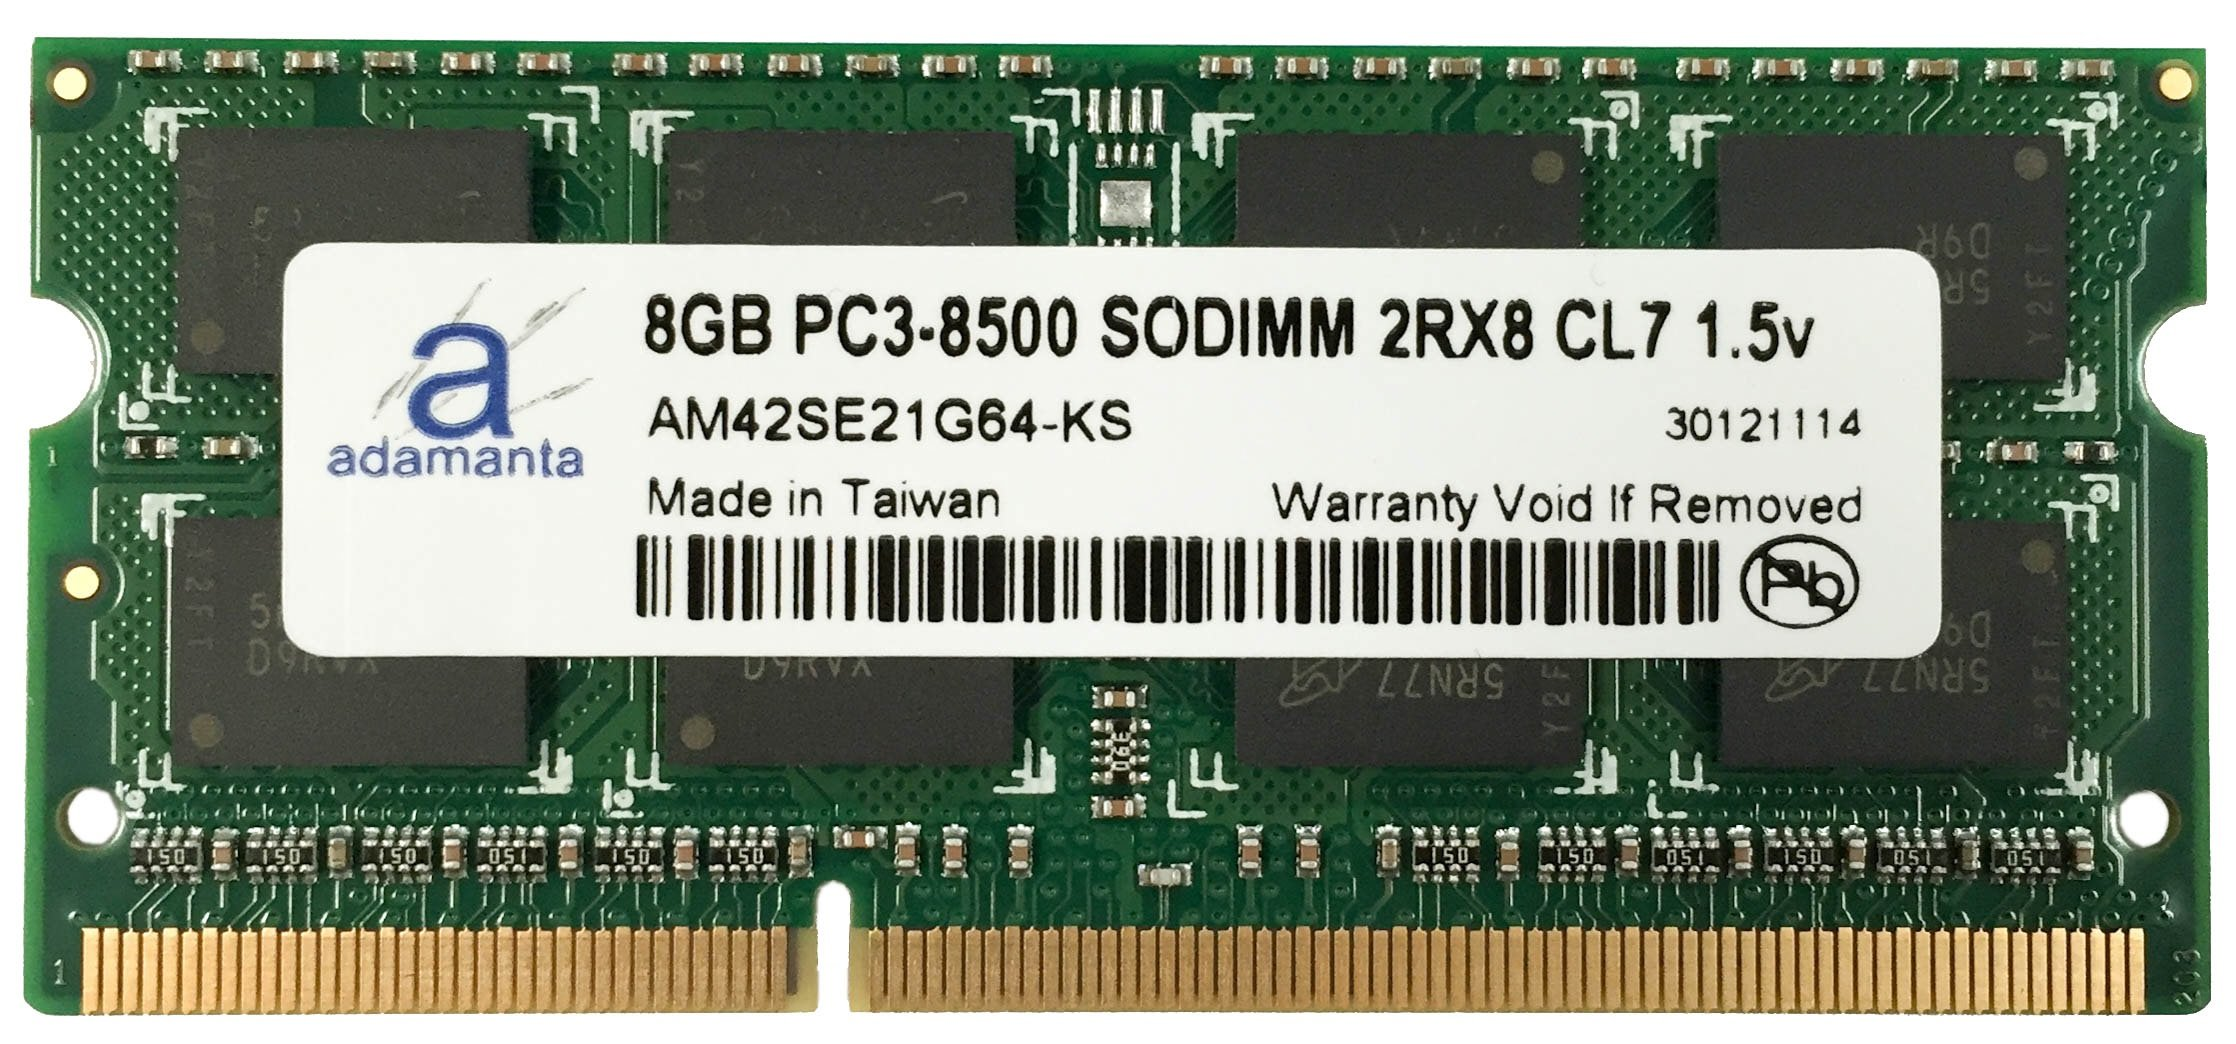 Adamanta 8GB (1x8GB) Laptop Memory Upgrade for Select HP G62 DDR3 1066Mhz PC3-8500 SODIMM 2Rx8 CL7 1.5v Notebook DRAM